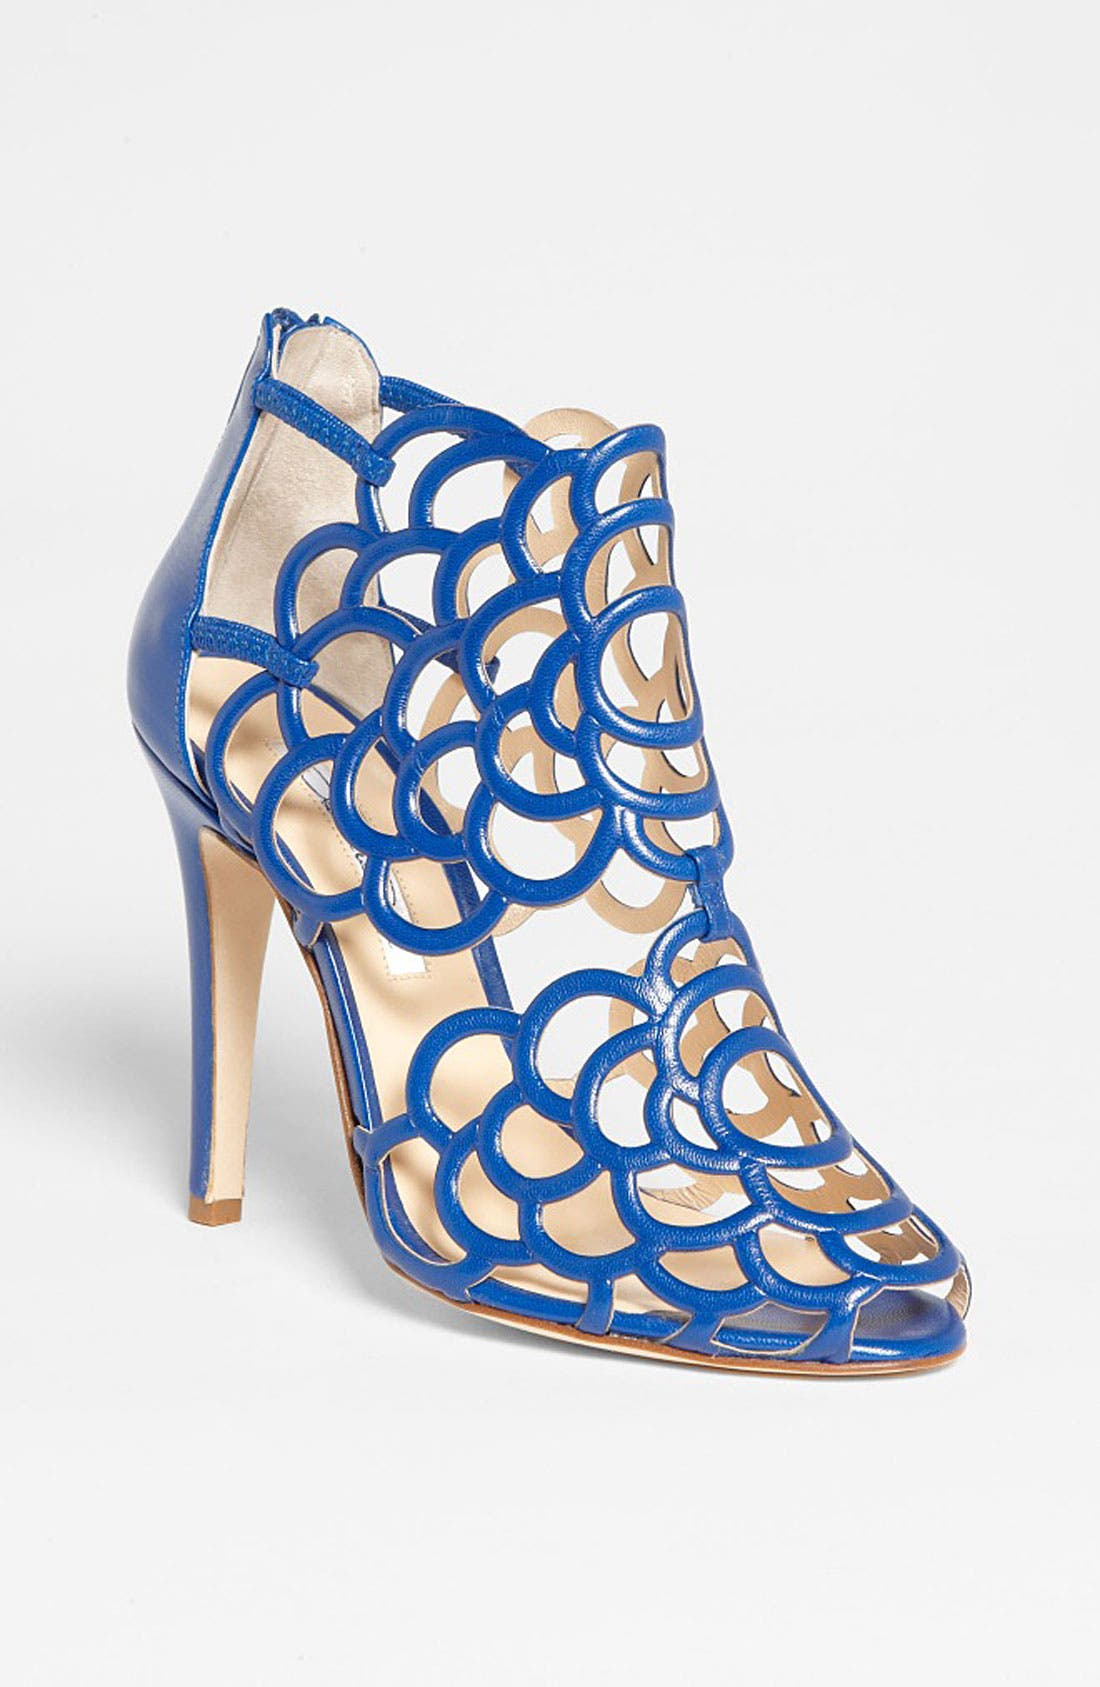 Alternate Image 1 Selected - Oscar de la Renta 'Gladia' Cage Sandal